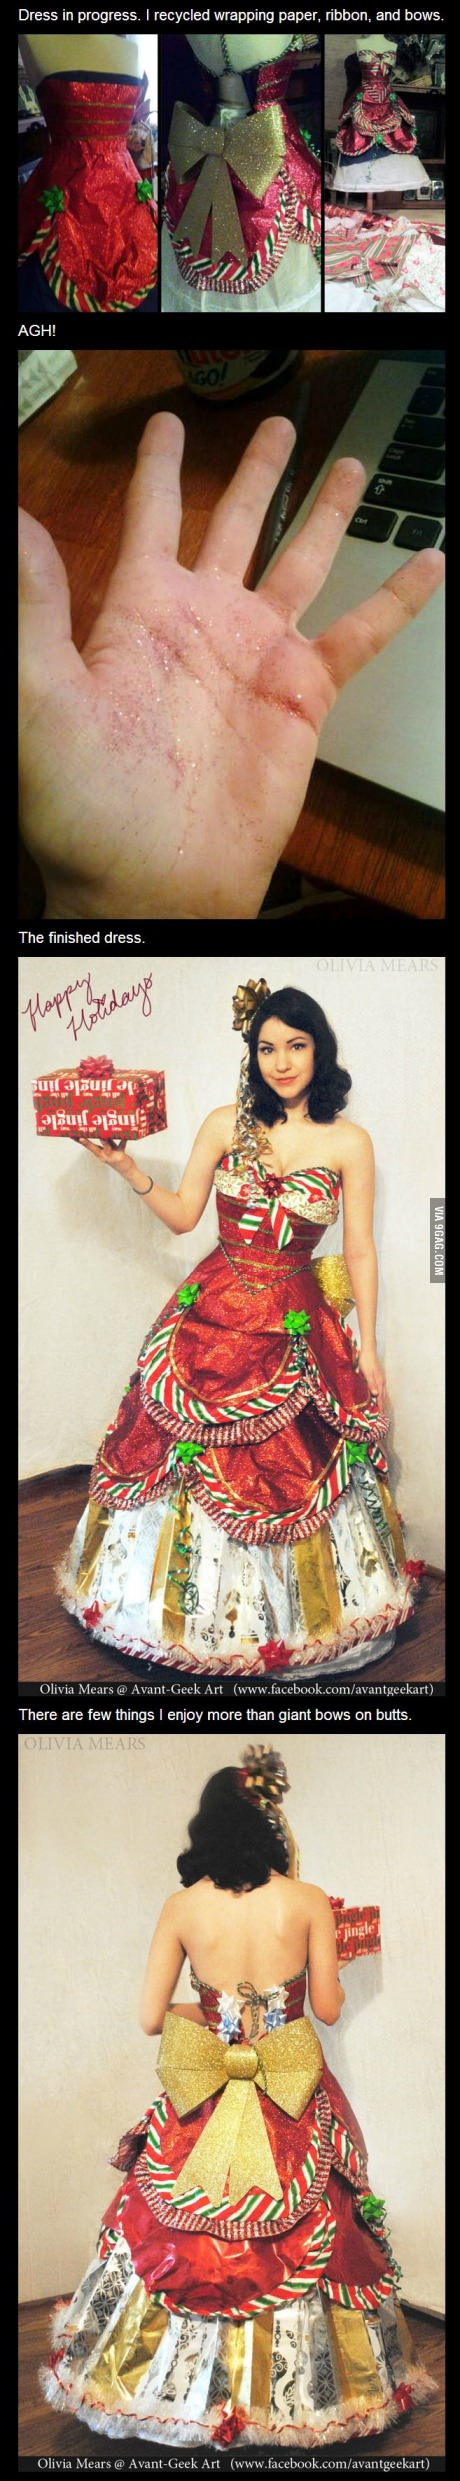 funny-picture-dress-wrapping-paper